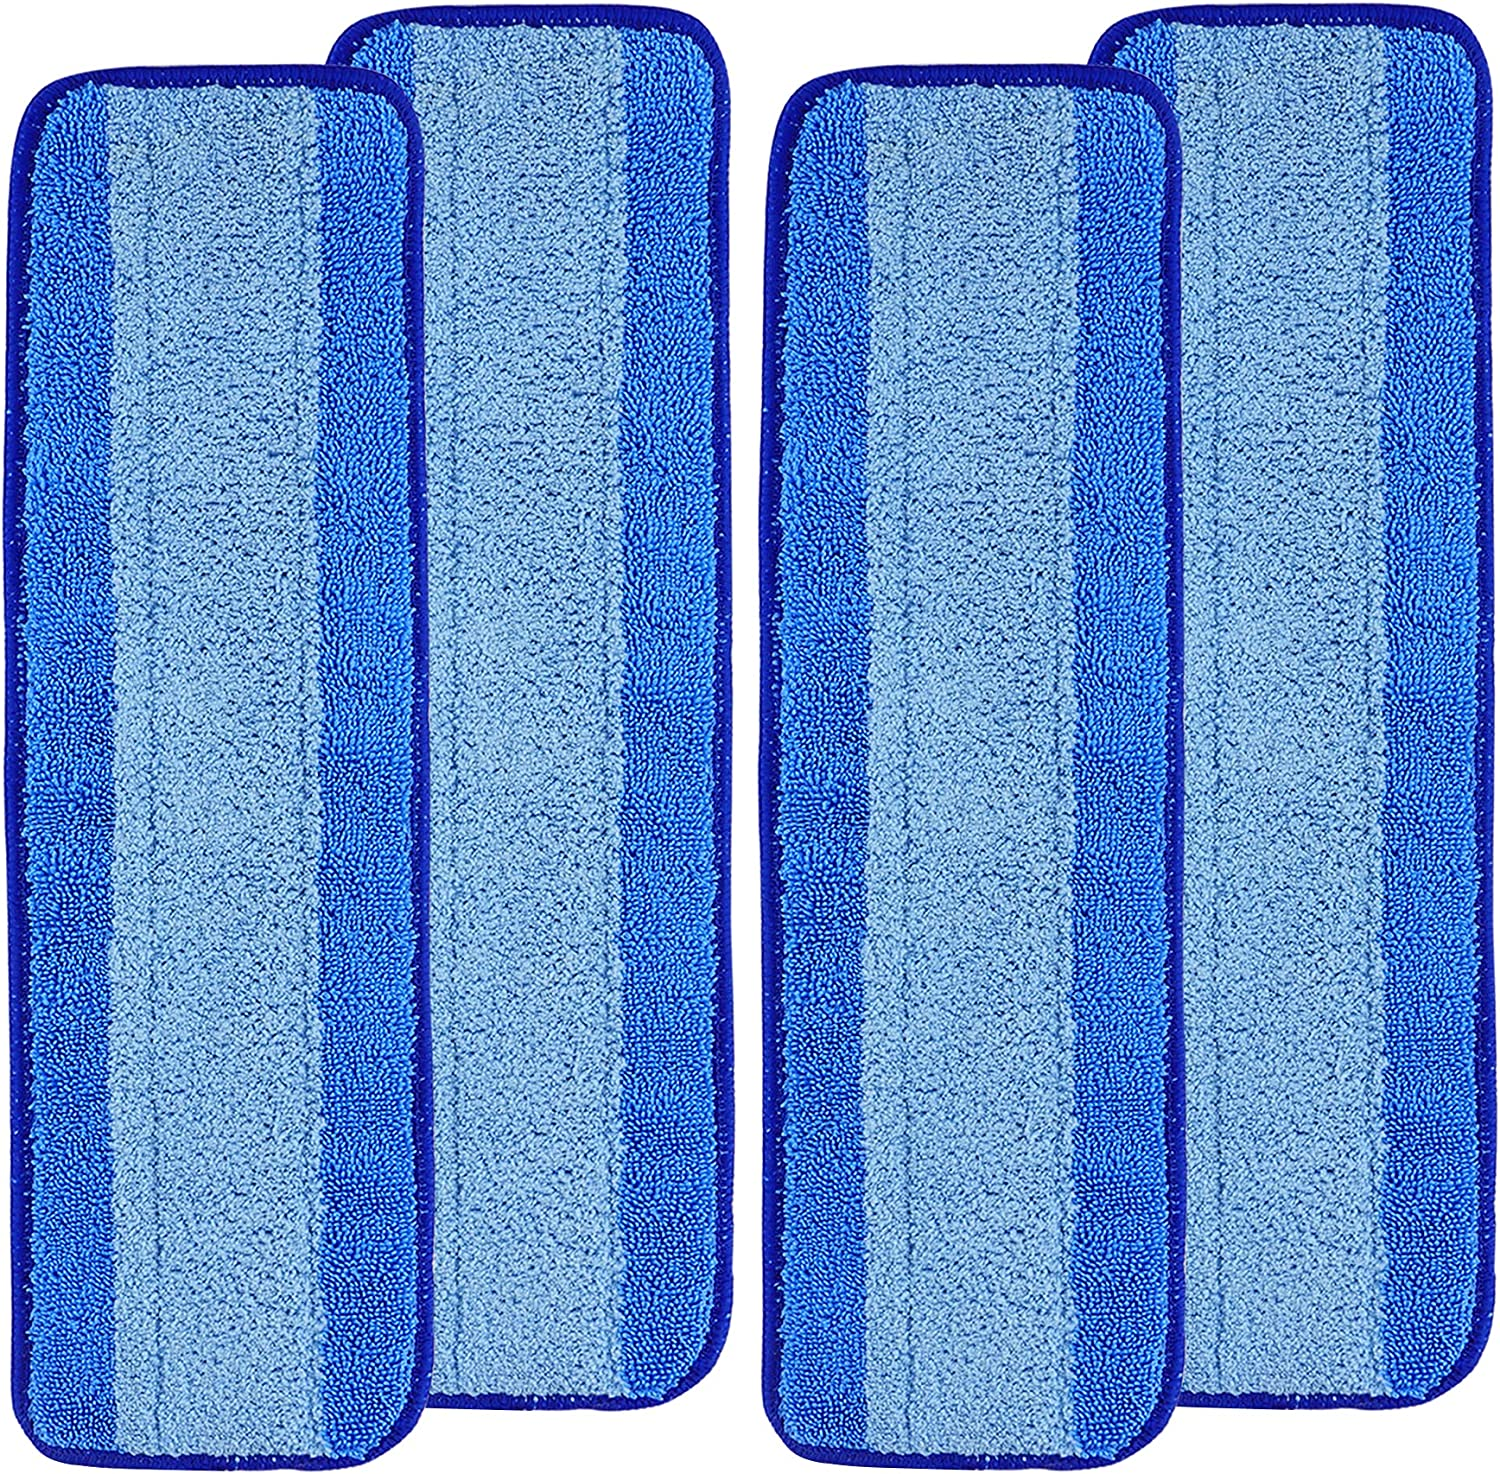 Fullclean Outstanding Max 65% OFF Microfiber Cleaning Pads Compatible with Bona - 4 Mop